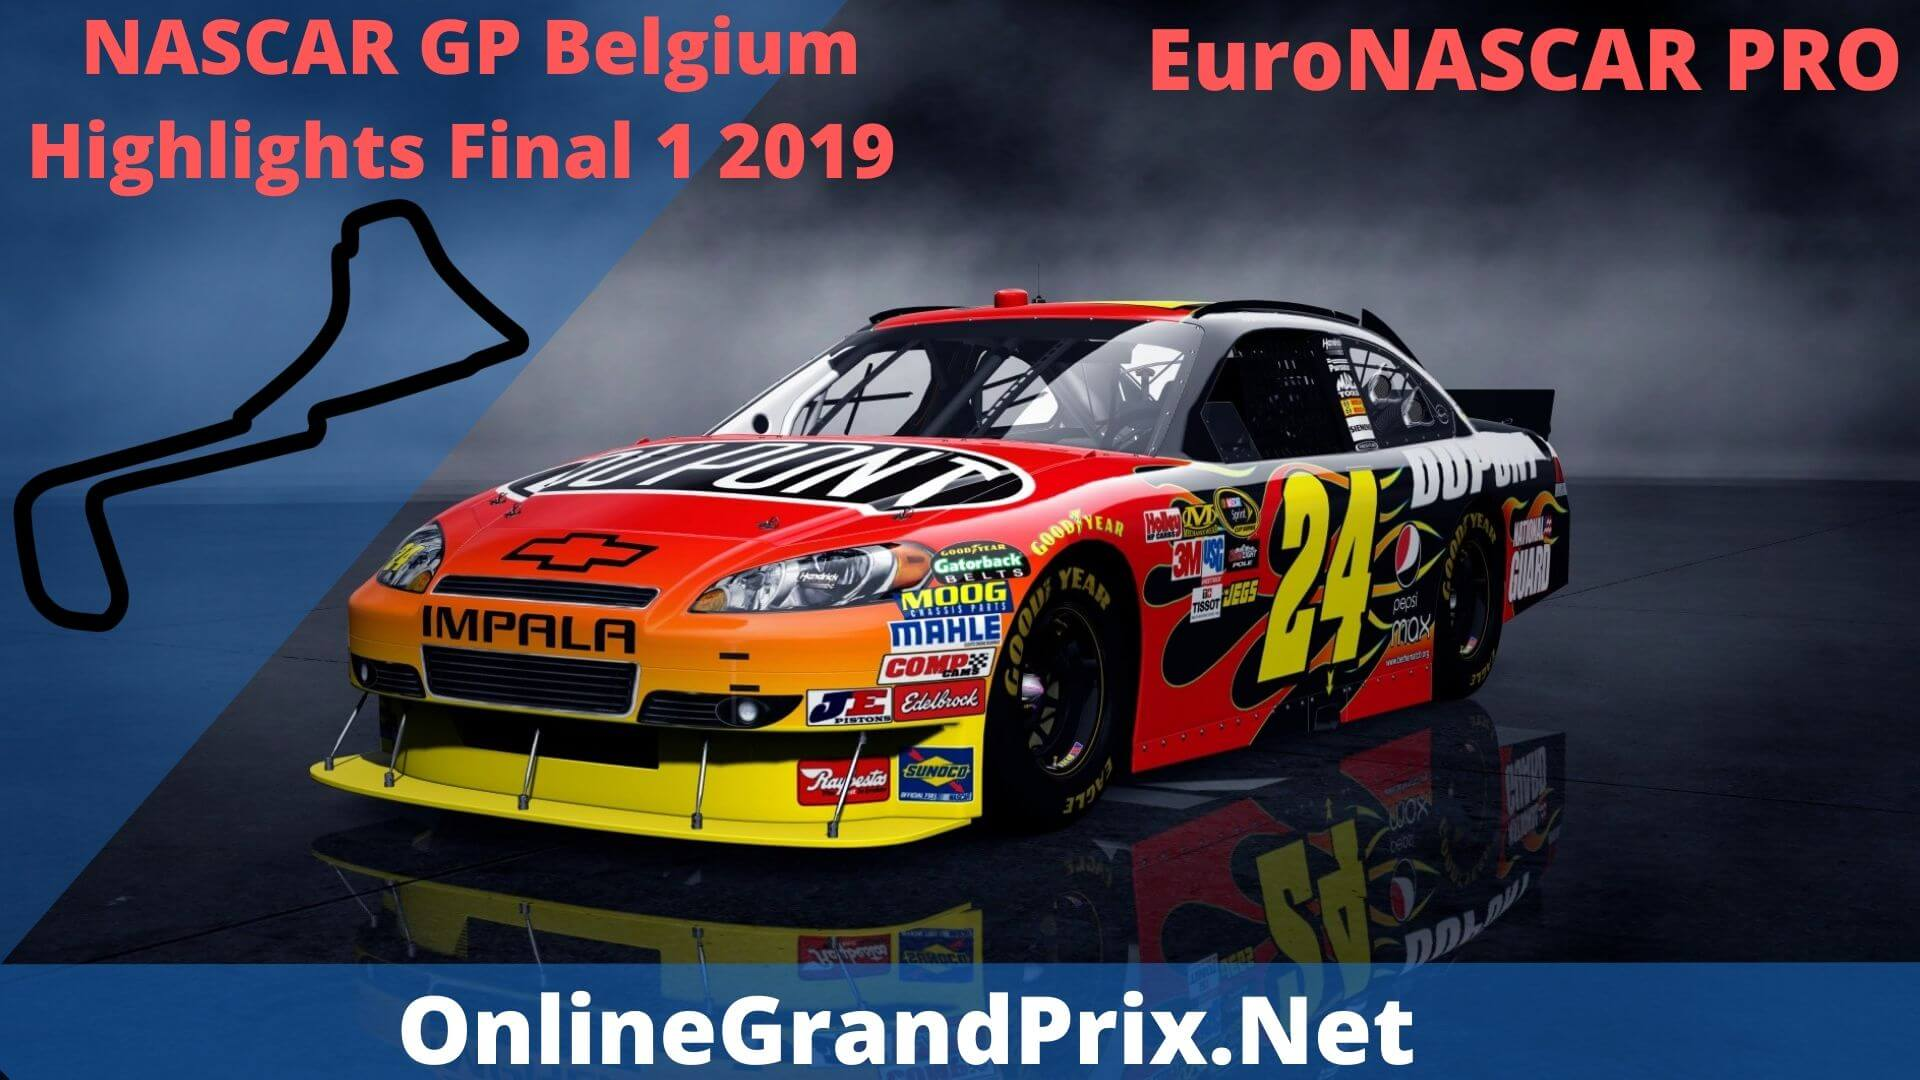 NASCAR GP Belgium Final 1 Highlights 2019